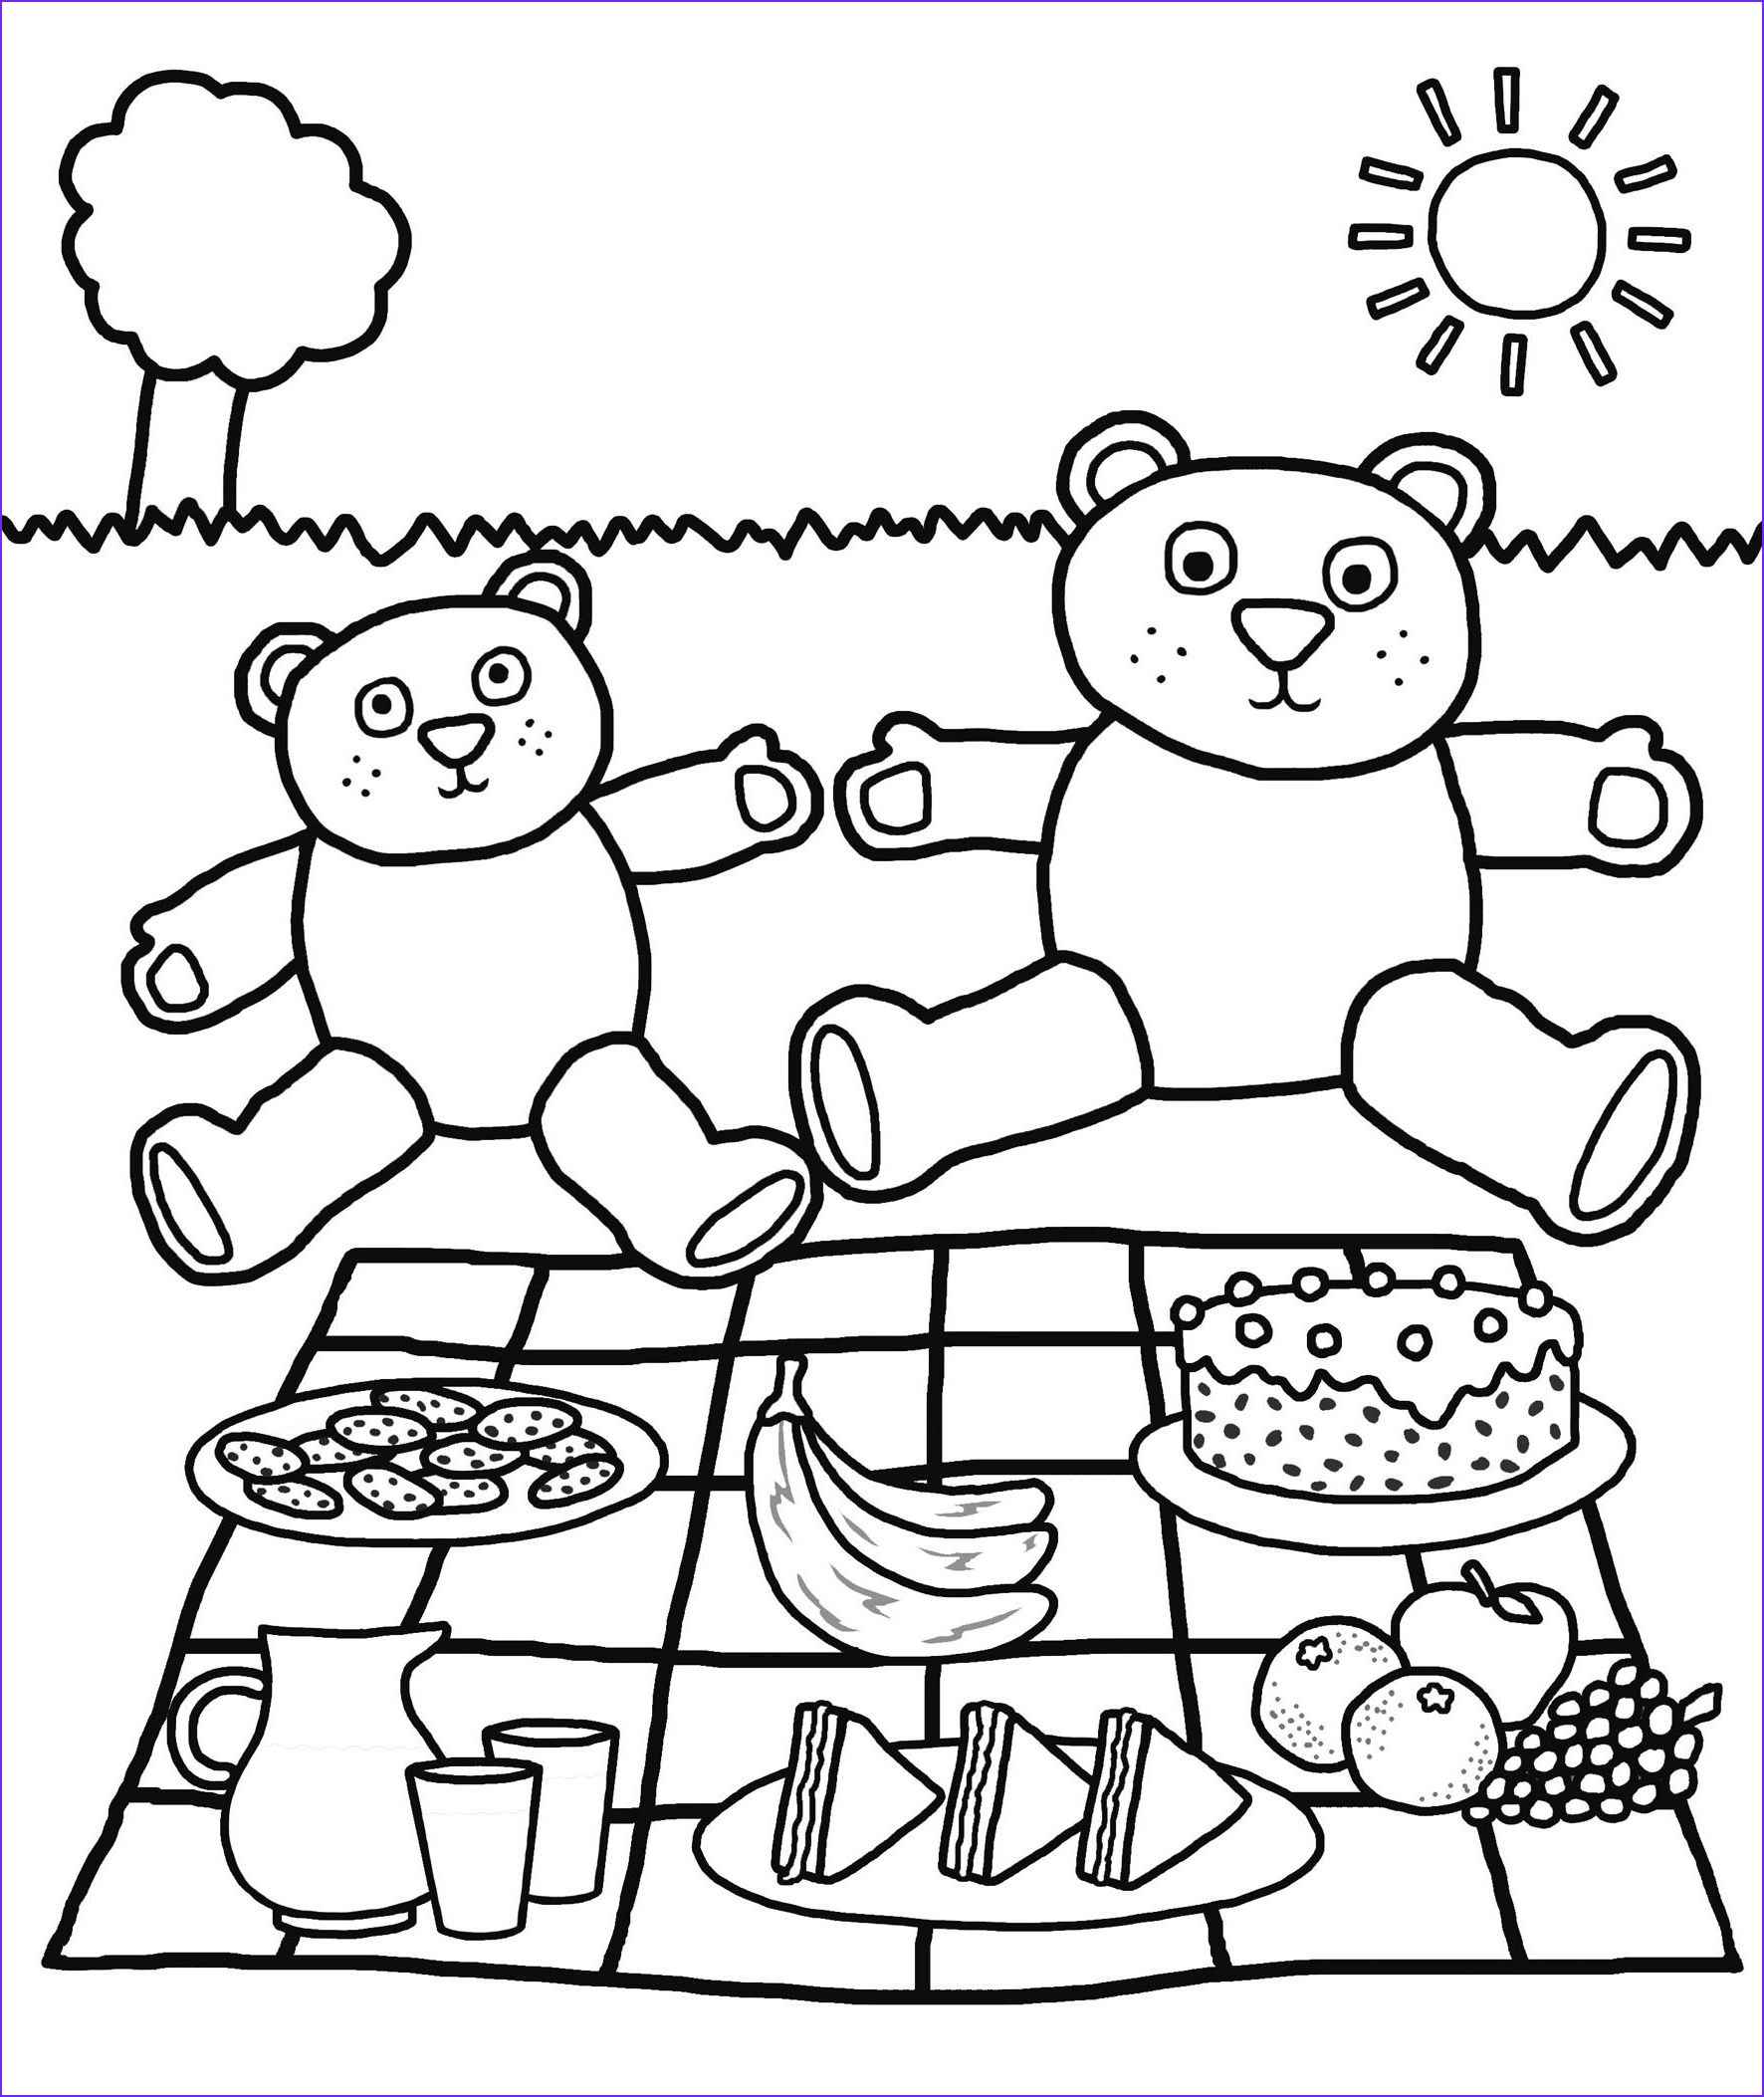 13 New Collection Of Picnic Coloring Sheet Bear Coloring Pages Teddy Bear Coloring Pages Minion Coloring Pages